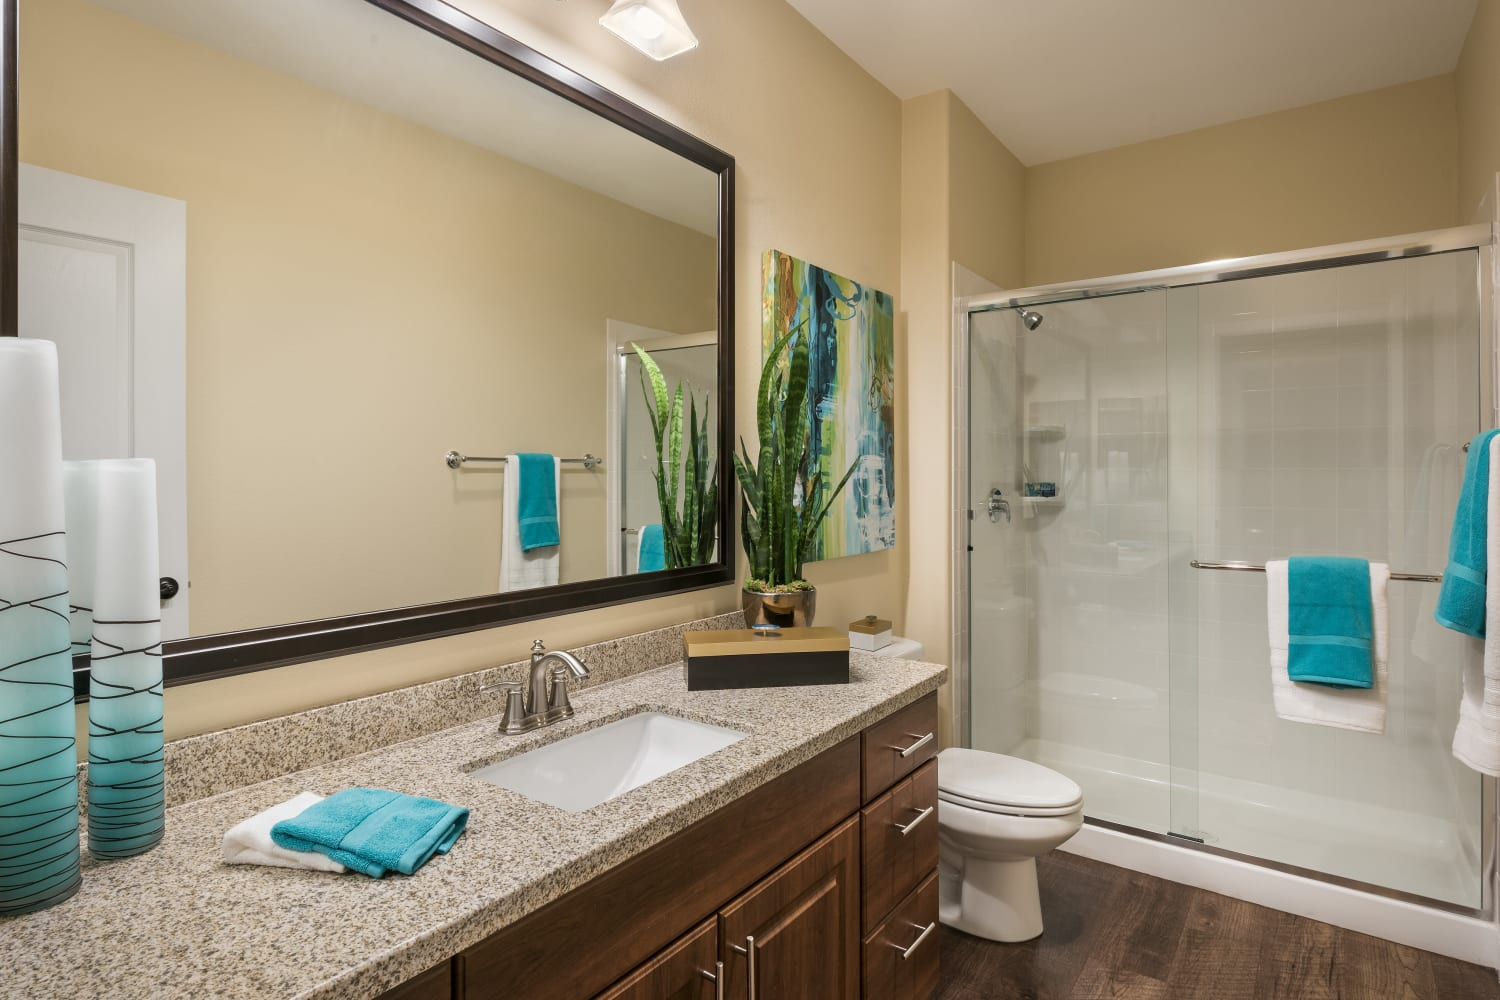 One Bathroom with shower and window at San Valencia in Chandler, Arizona